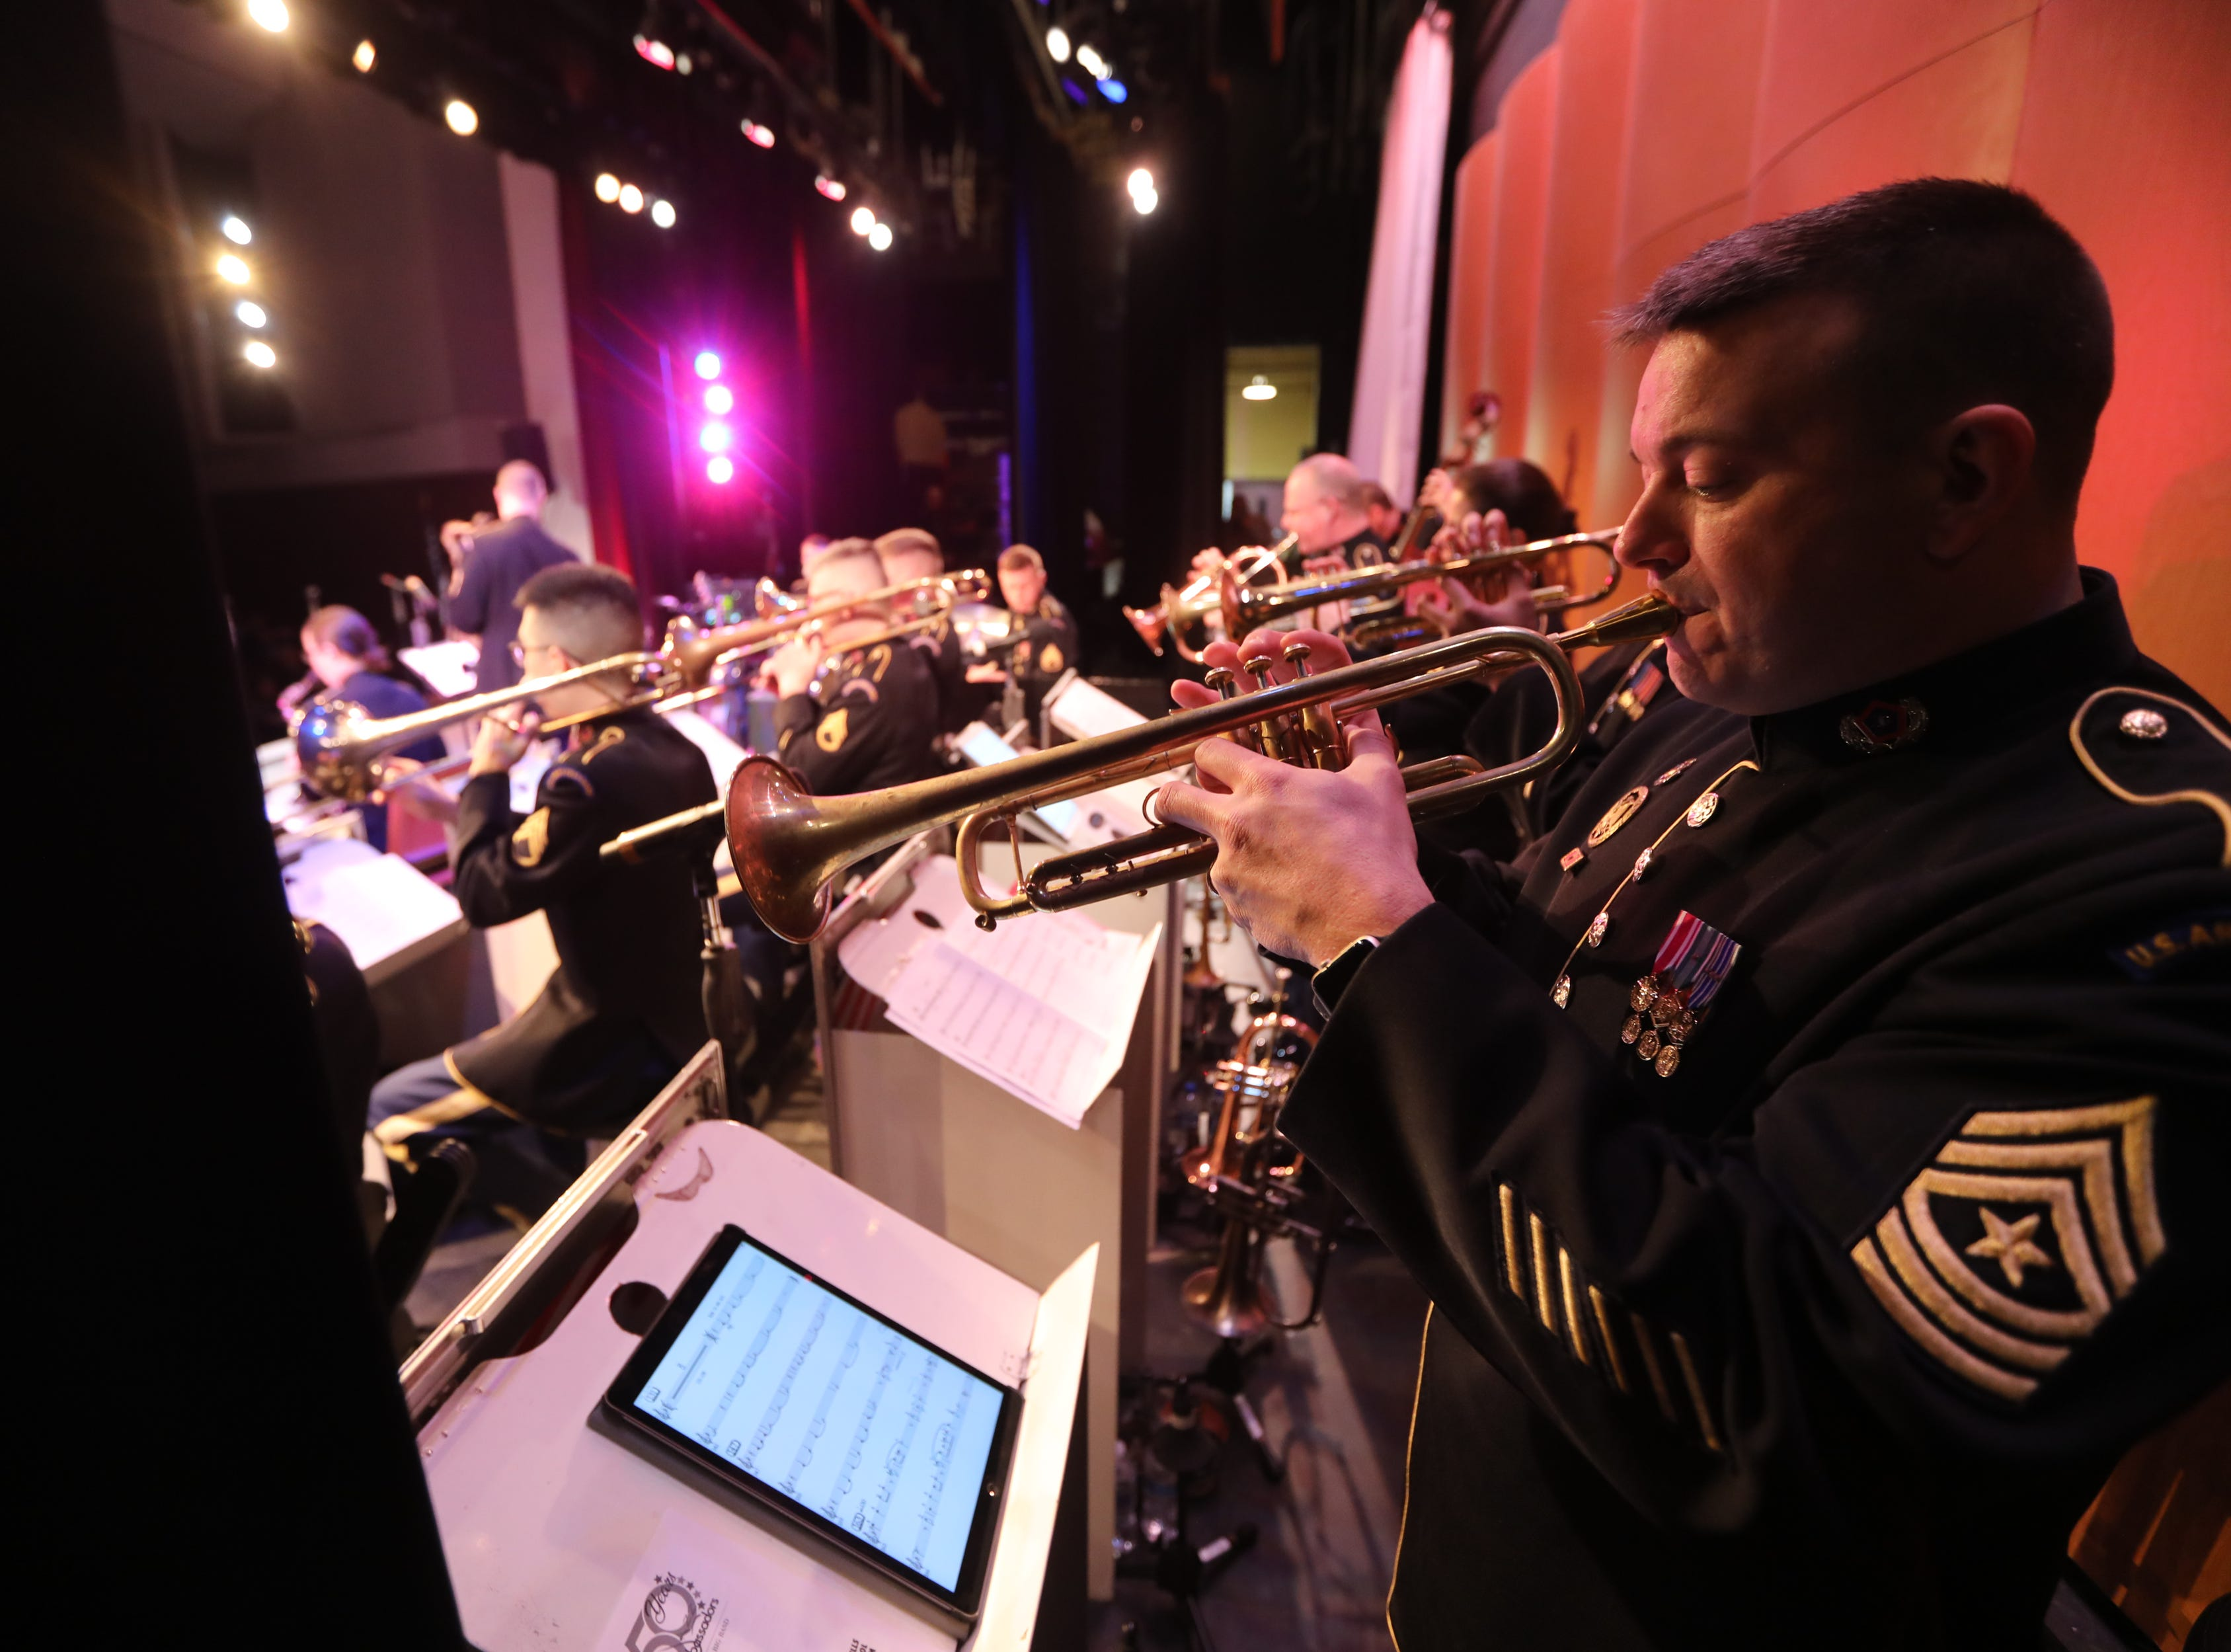 Sgt. Major John Altman plays the trumpet in Wayne.  The United States Army Jazz Ambassadors Field Band performed at Wayne Hills High School, Thursday, March 21, 2019.  This was the eleventh day of their tour, which lasts more than a month.